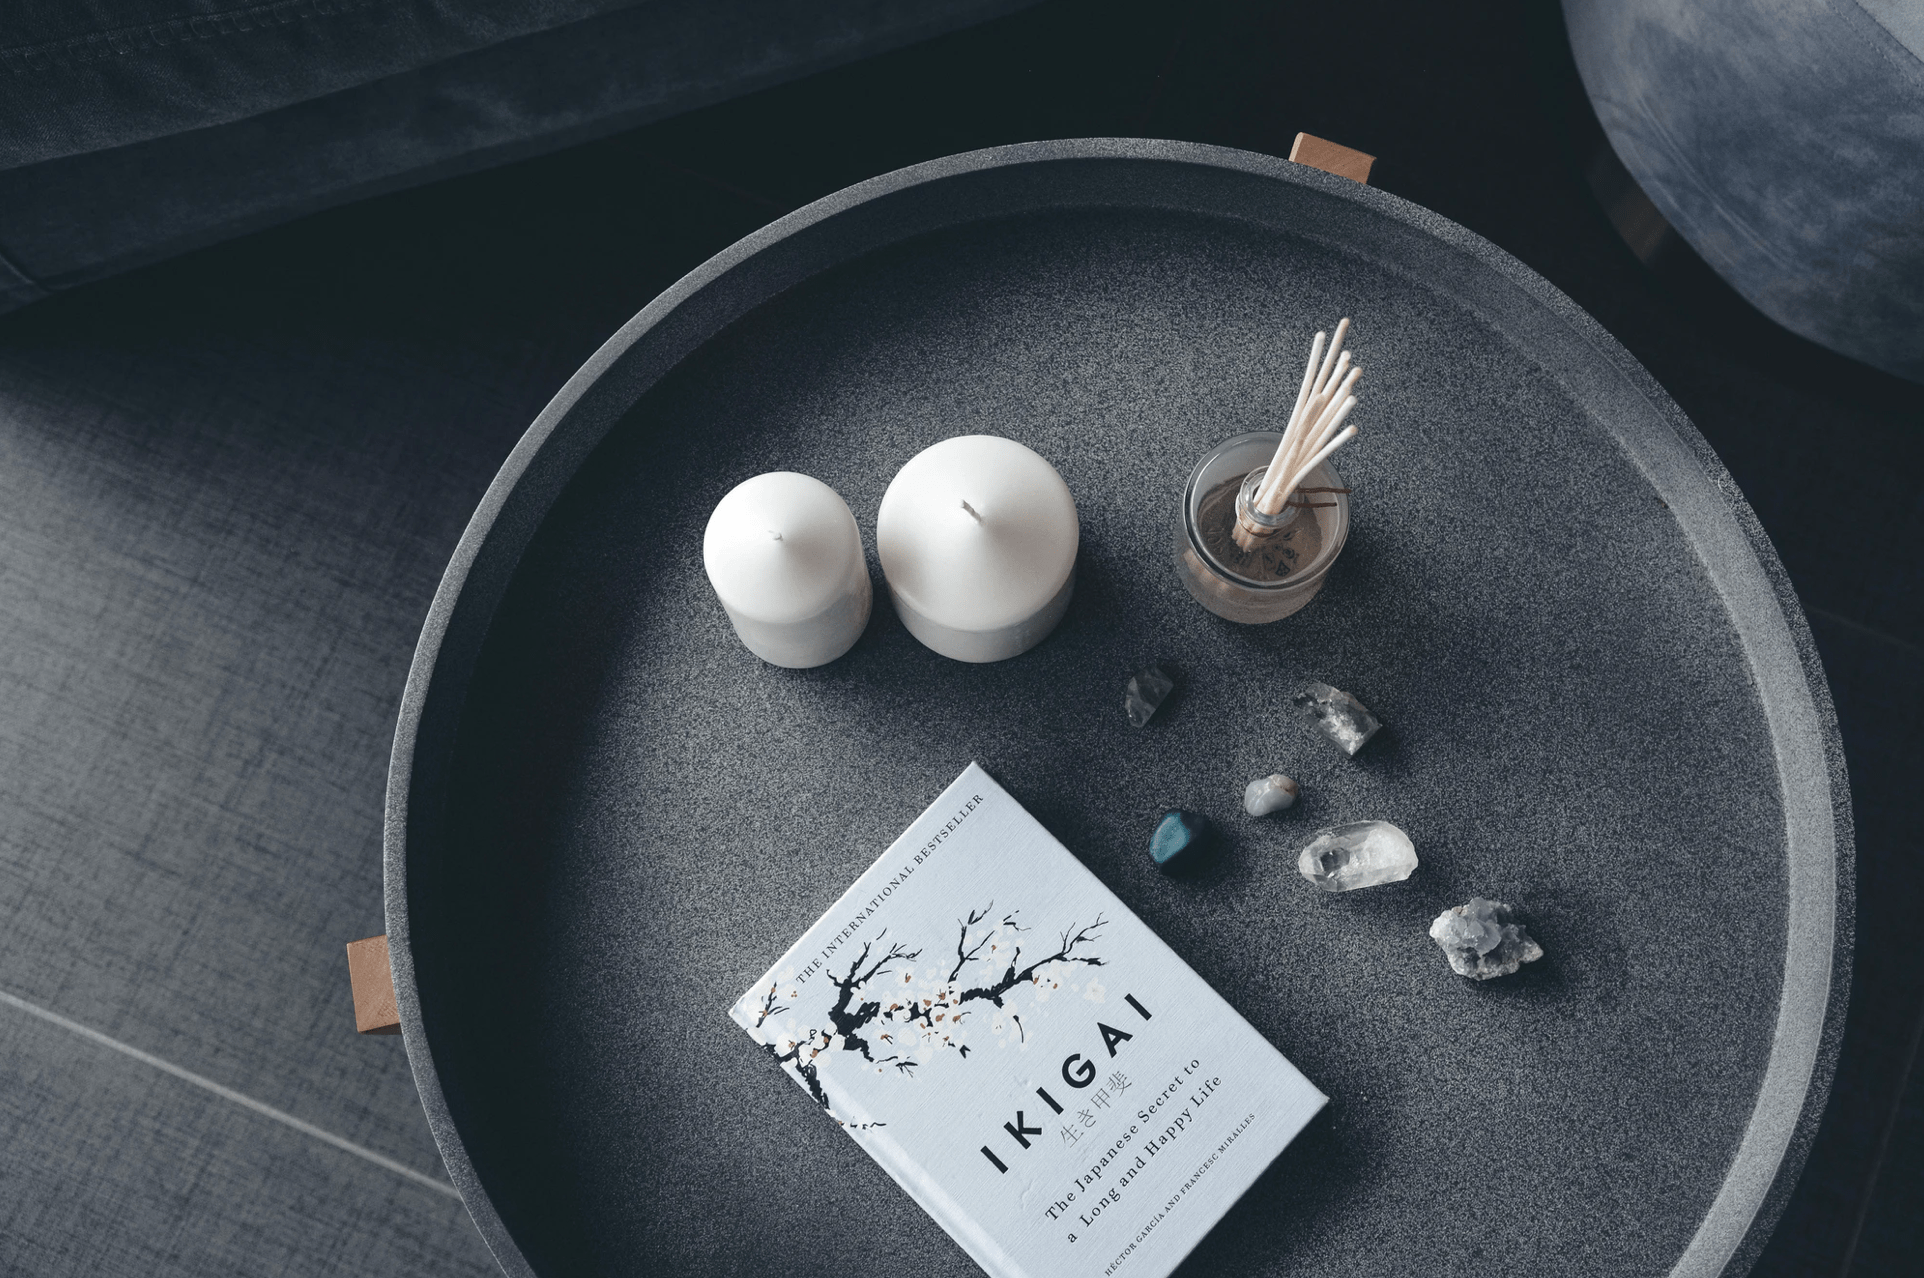 ABC Hospitality - Ikigai: finding Life's Purpose as the Key to the Well-Being